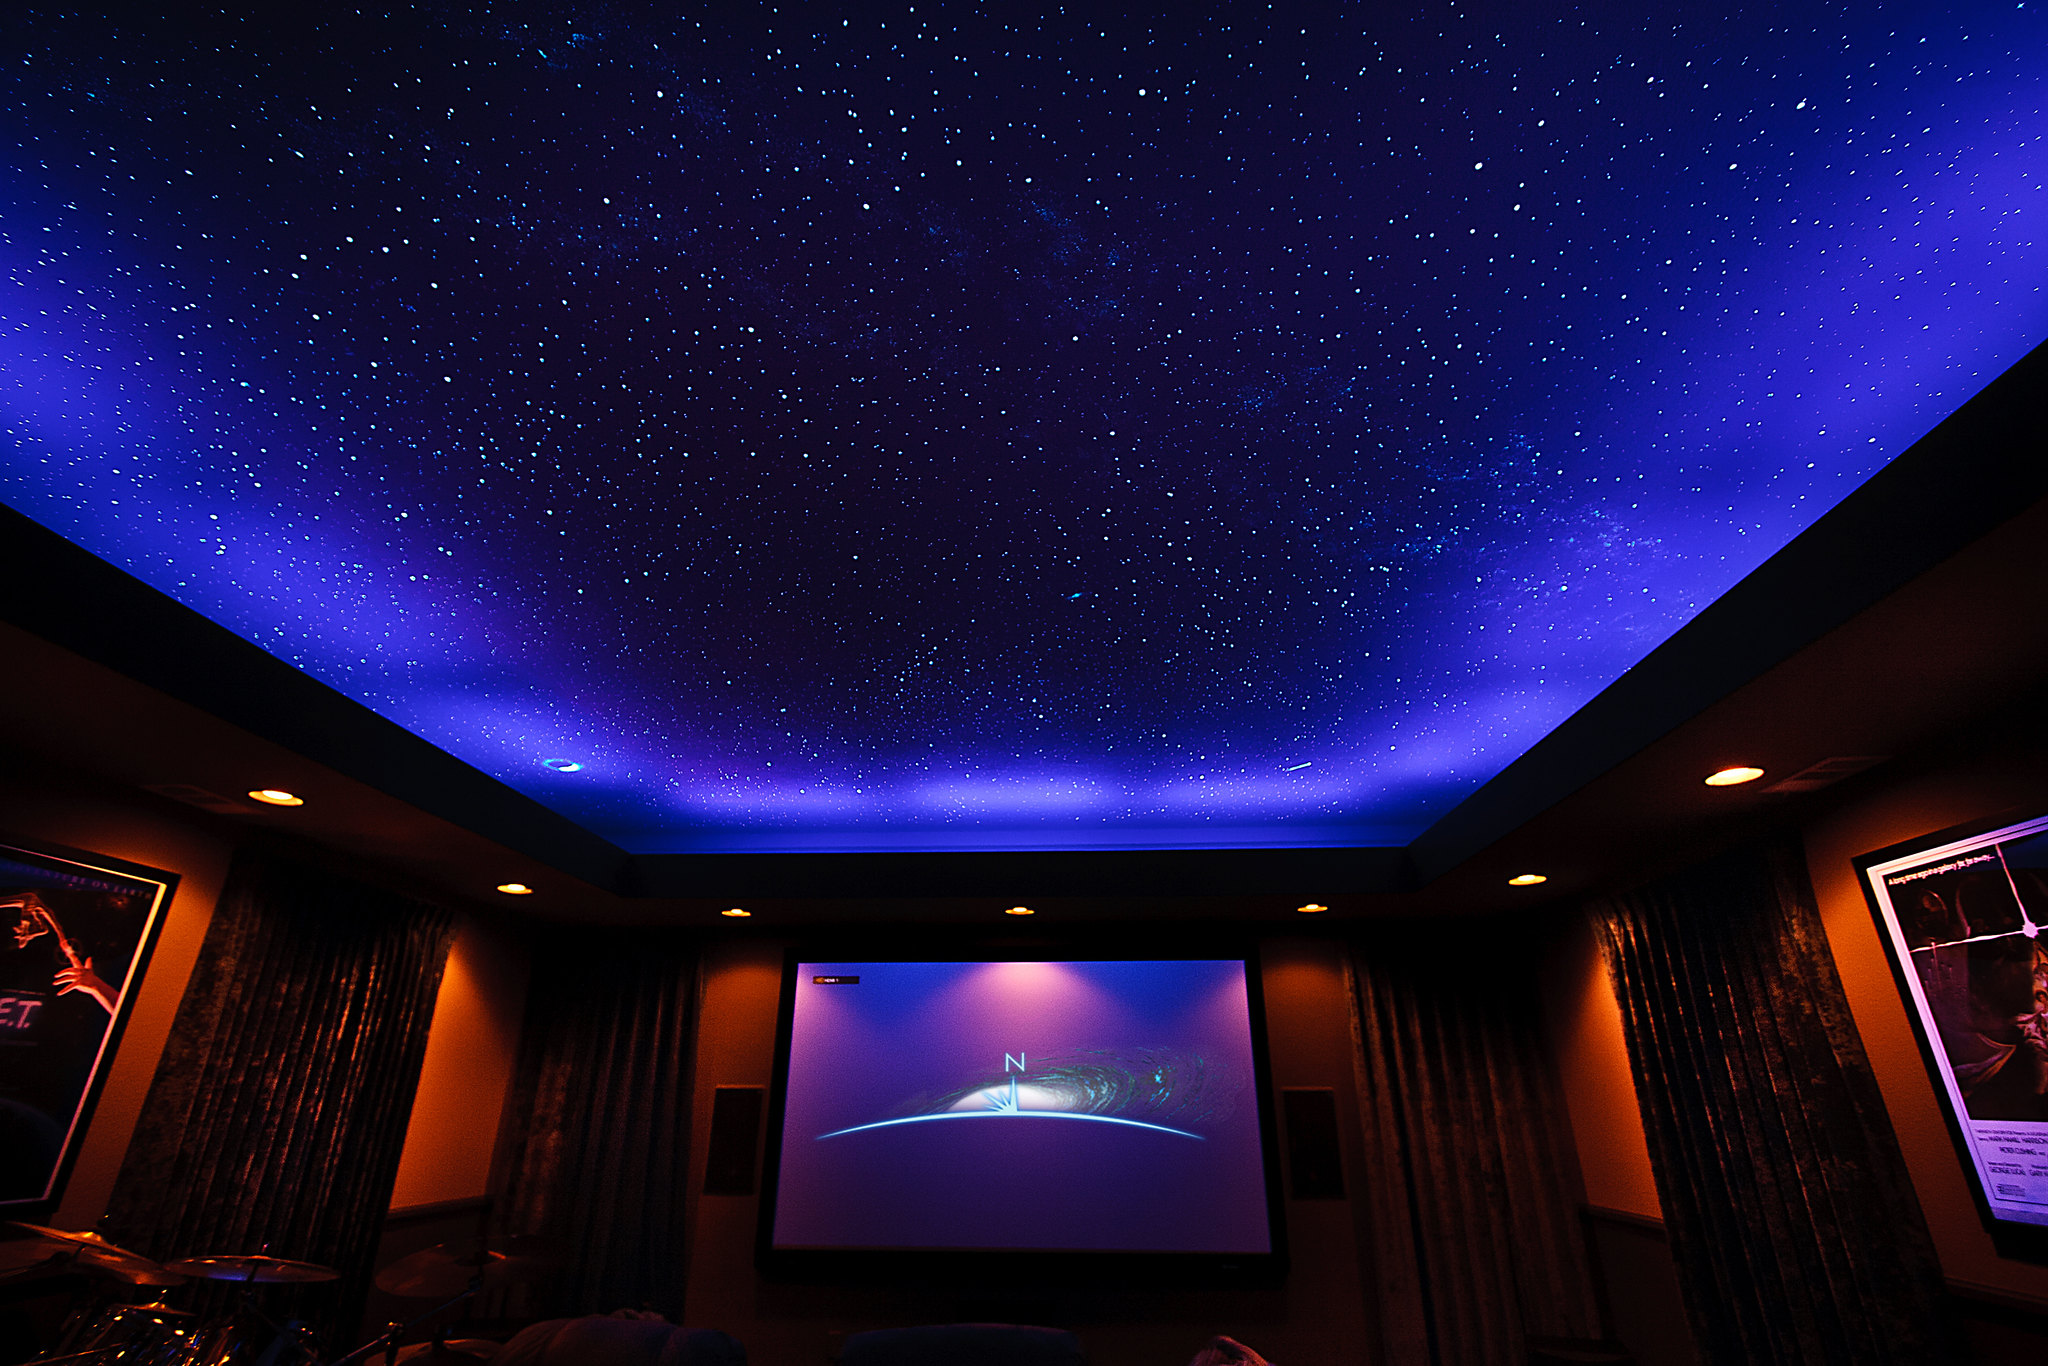 Captivating Star Ceilings... Painted Or Fiber Optics?   AVS Forum | Home Theater  Discussions And Reviews